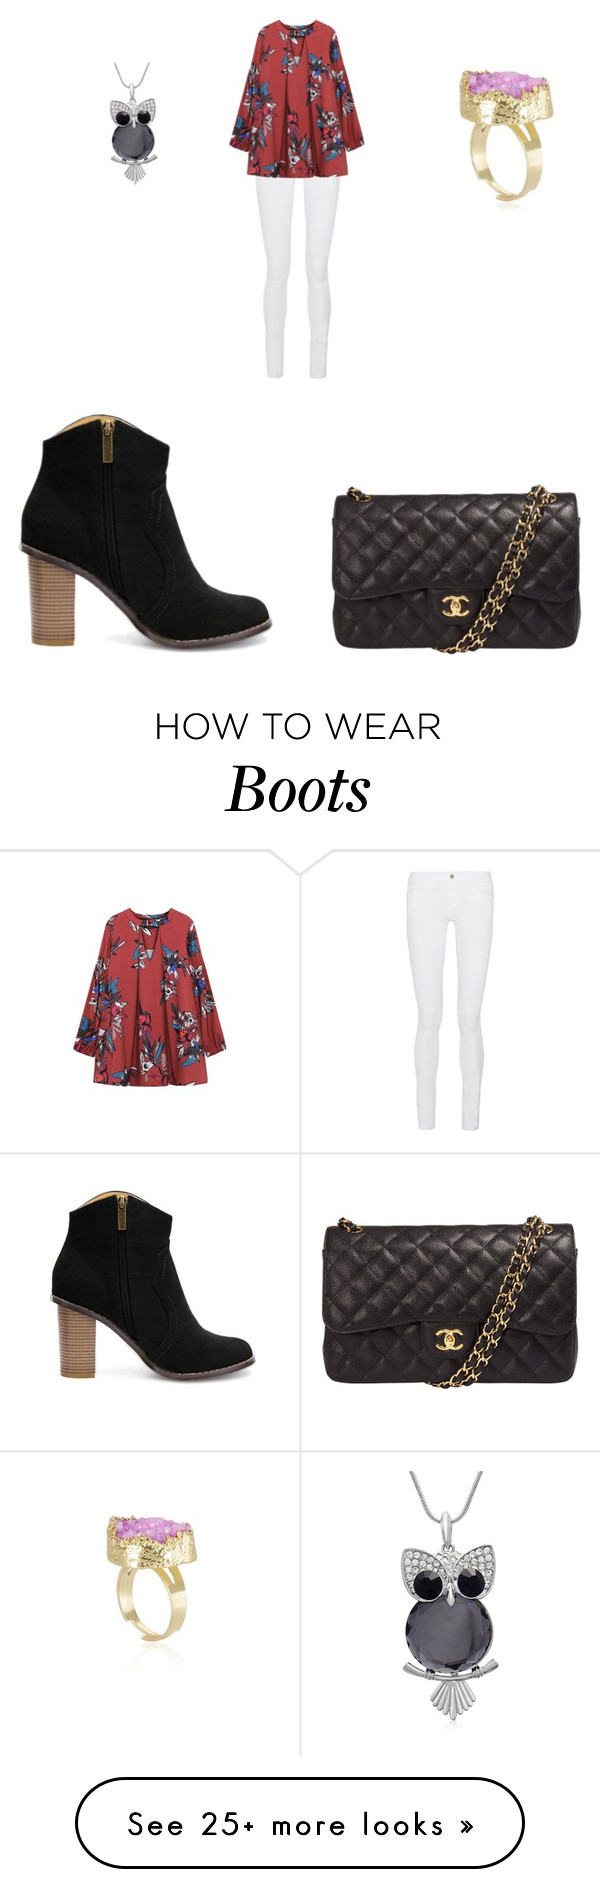 """Ankle Boots"" by morgan-roberts0228 on Polyvore featuring Frame Denim, Chanel, women's clothing, women's fashion, women, female, woman, misses and juniors"